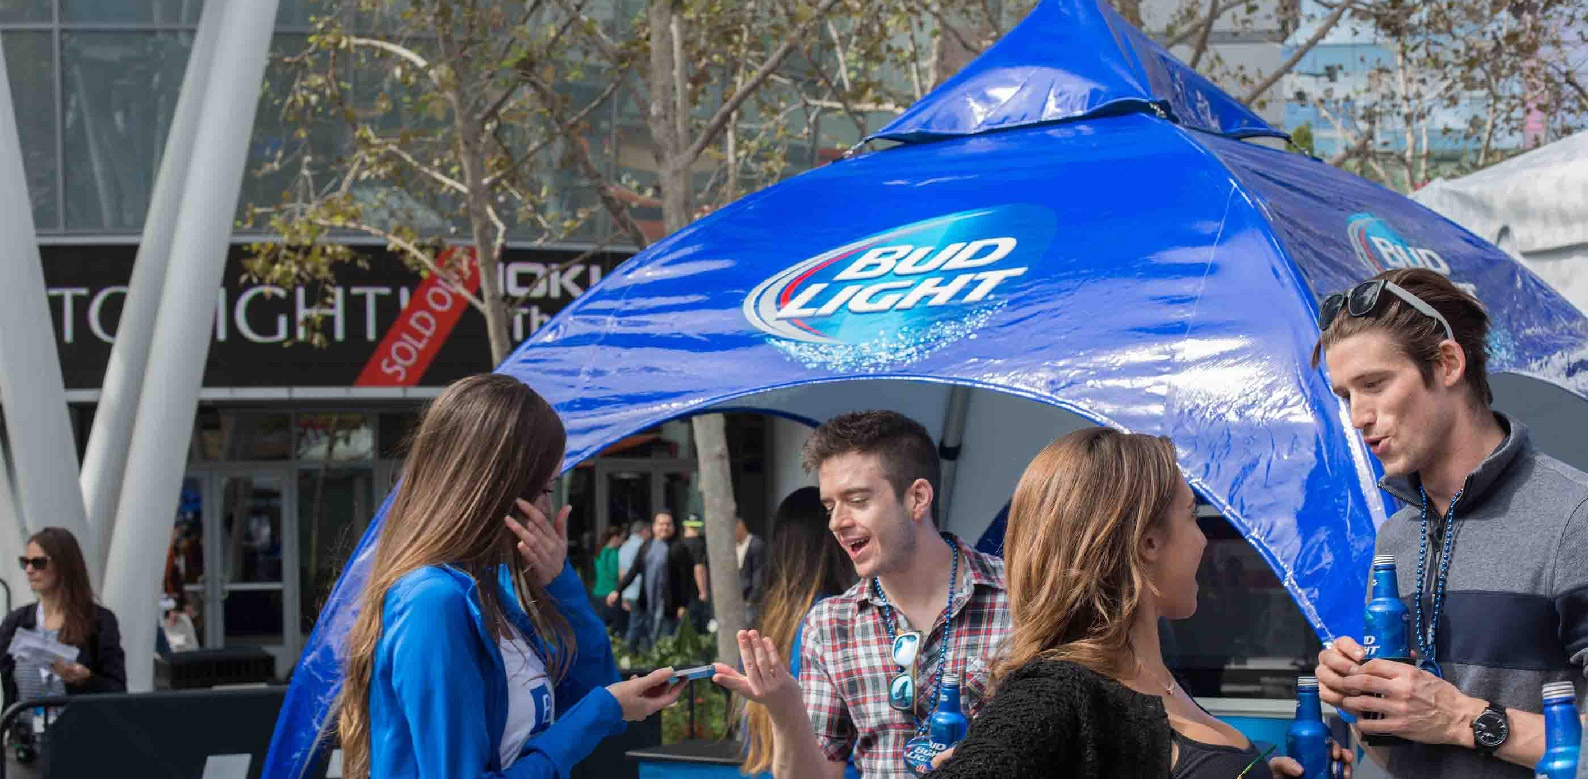 Bud Light Arch Frame Tent seen from different angles at the promotional design group facility